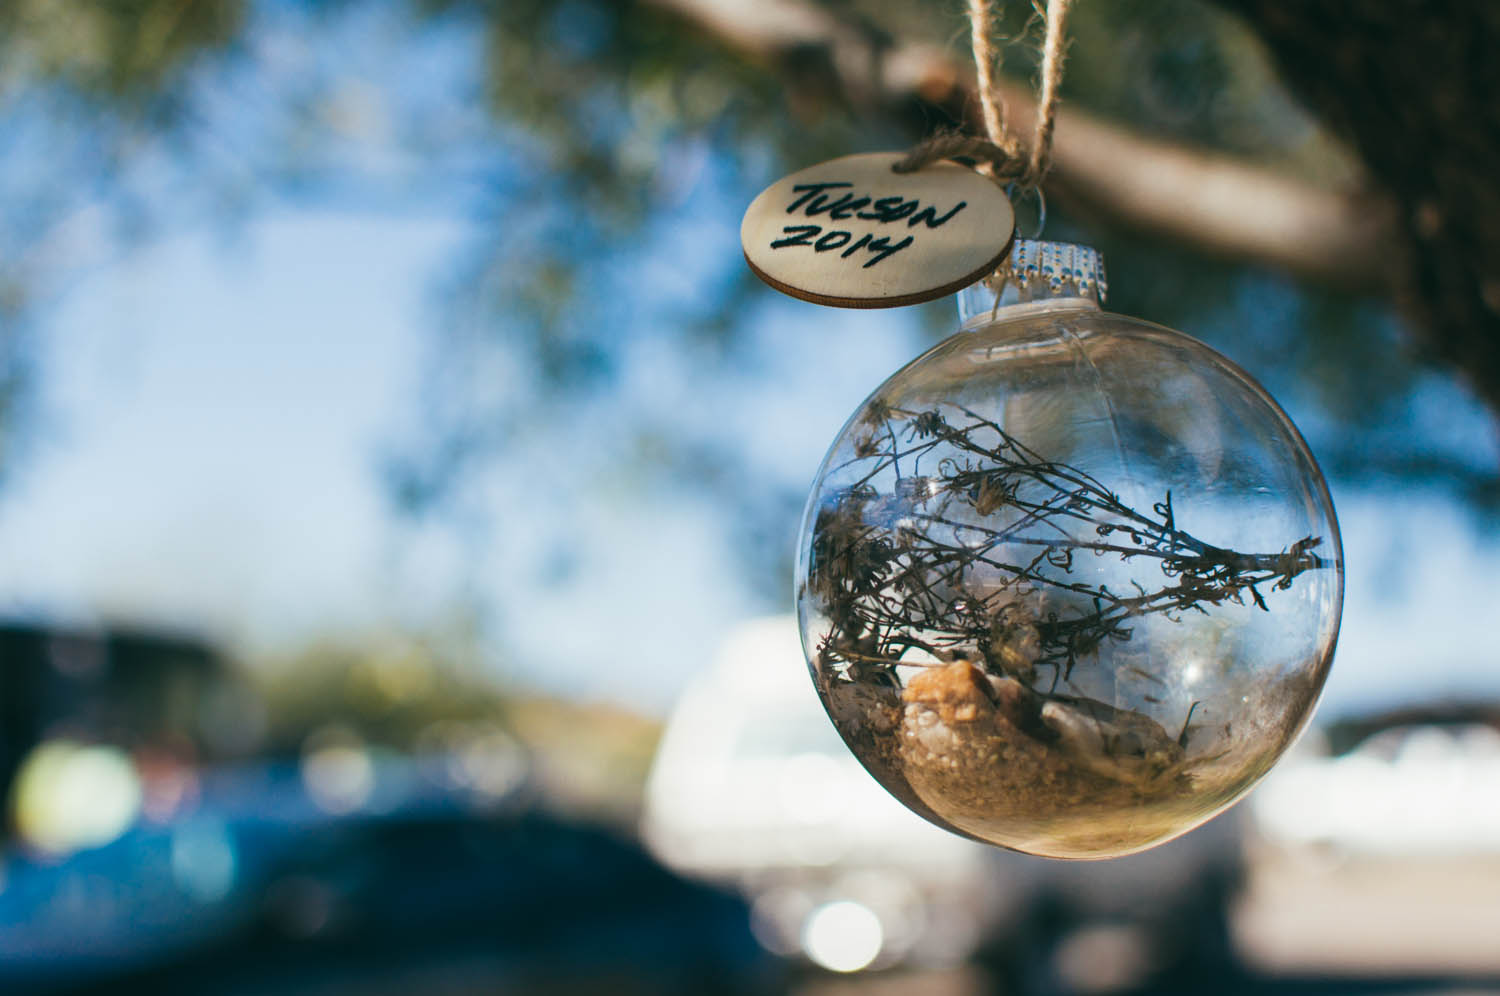 Our friend made a Christmas ornament for each of us that she filled with rocks, sand and dried plants that she picked on a hike so that we would remember this Christmas forever. It was the sweetest gift.